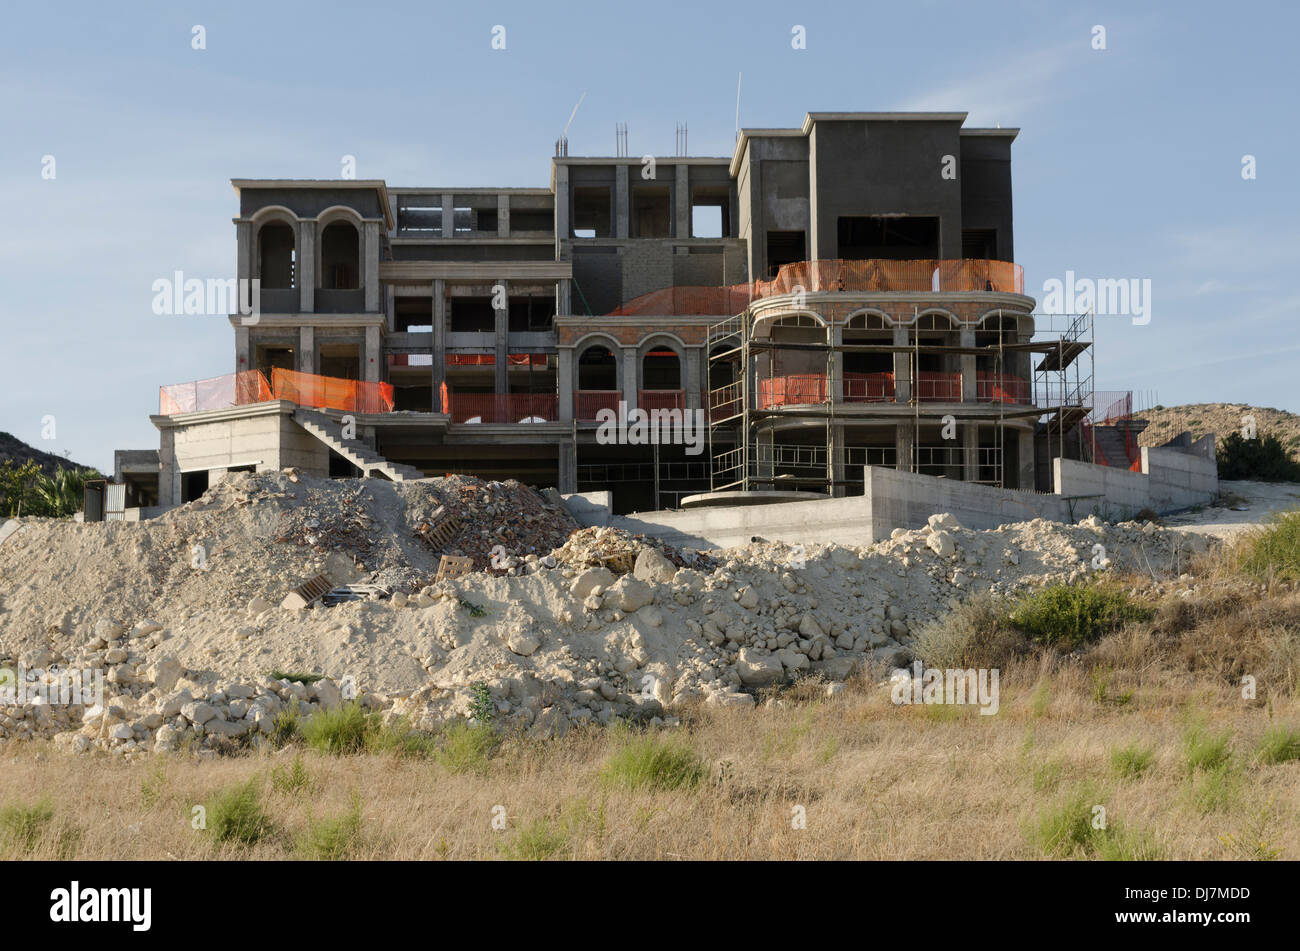 Building Site in Limassol Cyprus - Stock Image